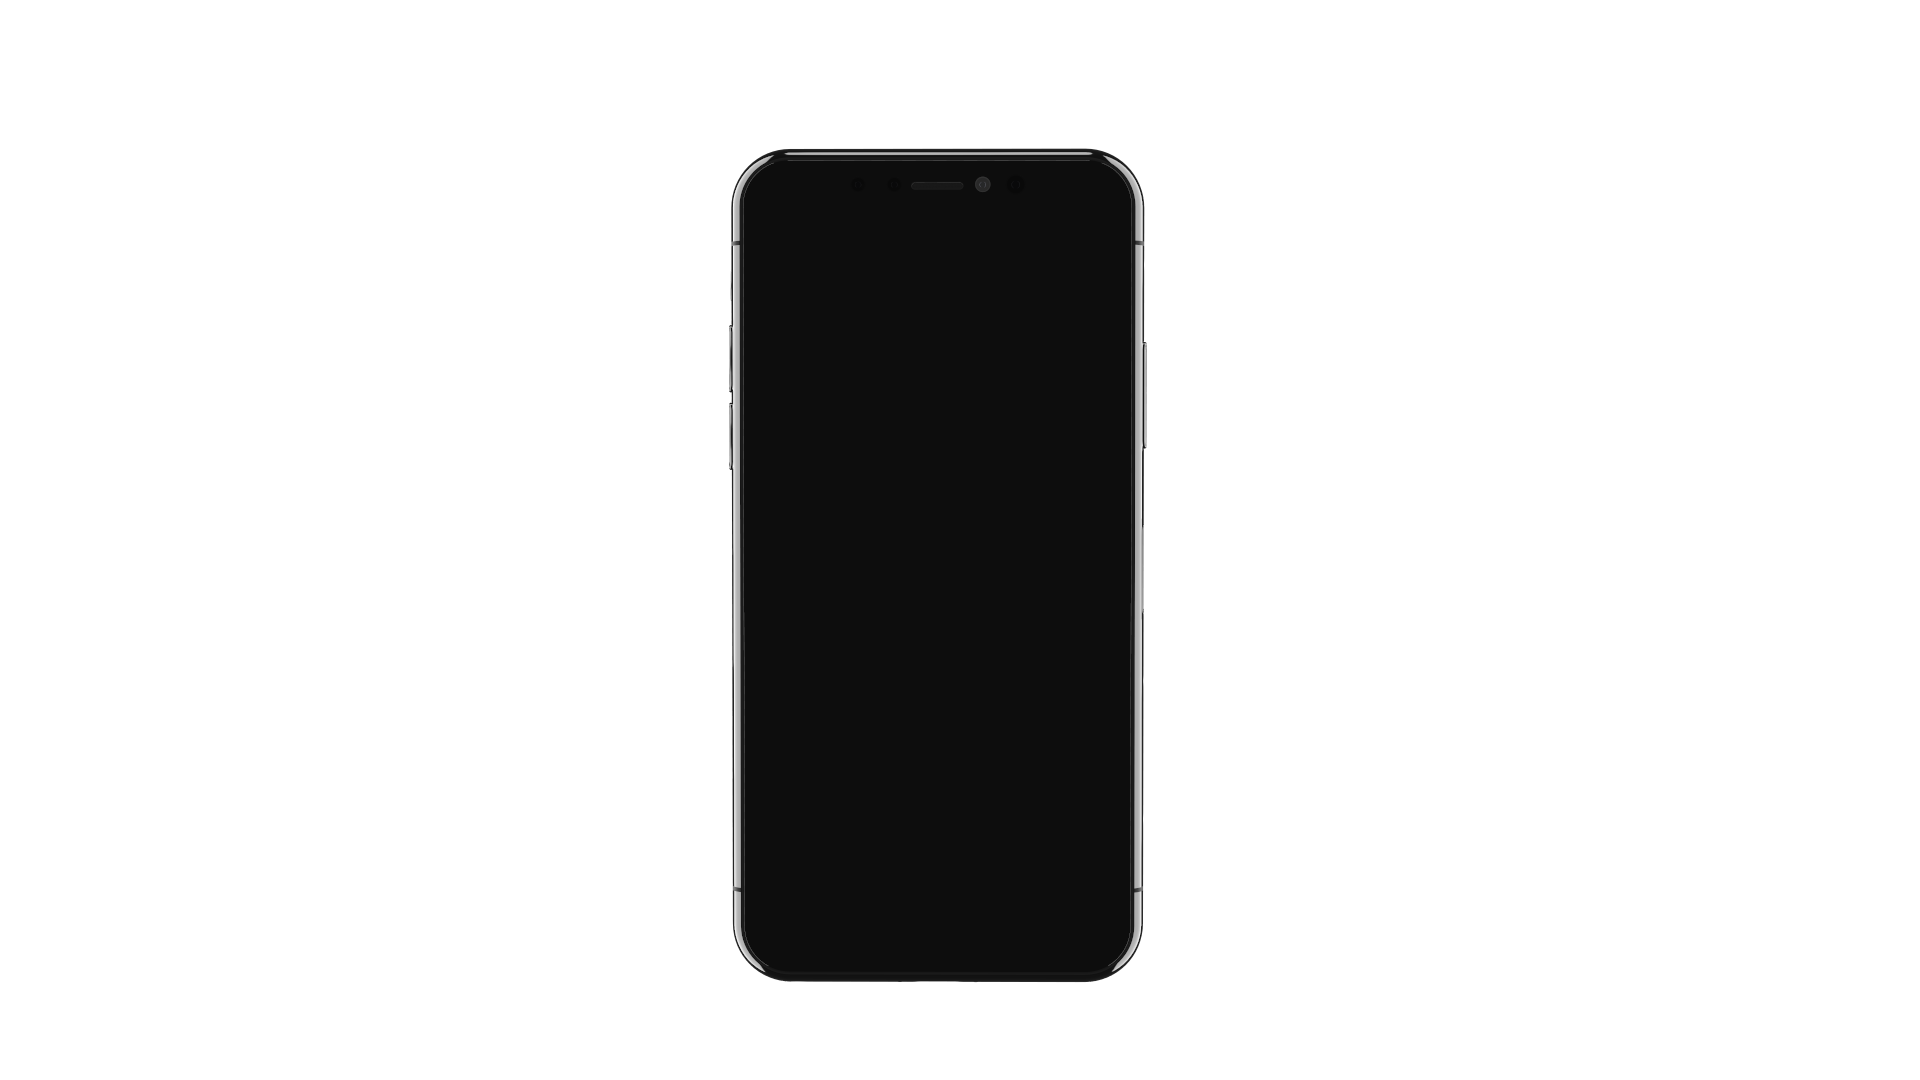 Blank iphone screen png. Element d apple x